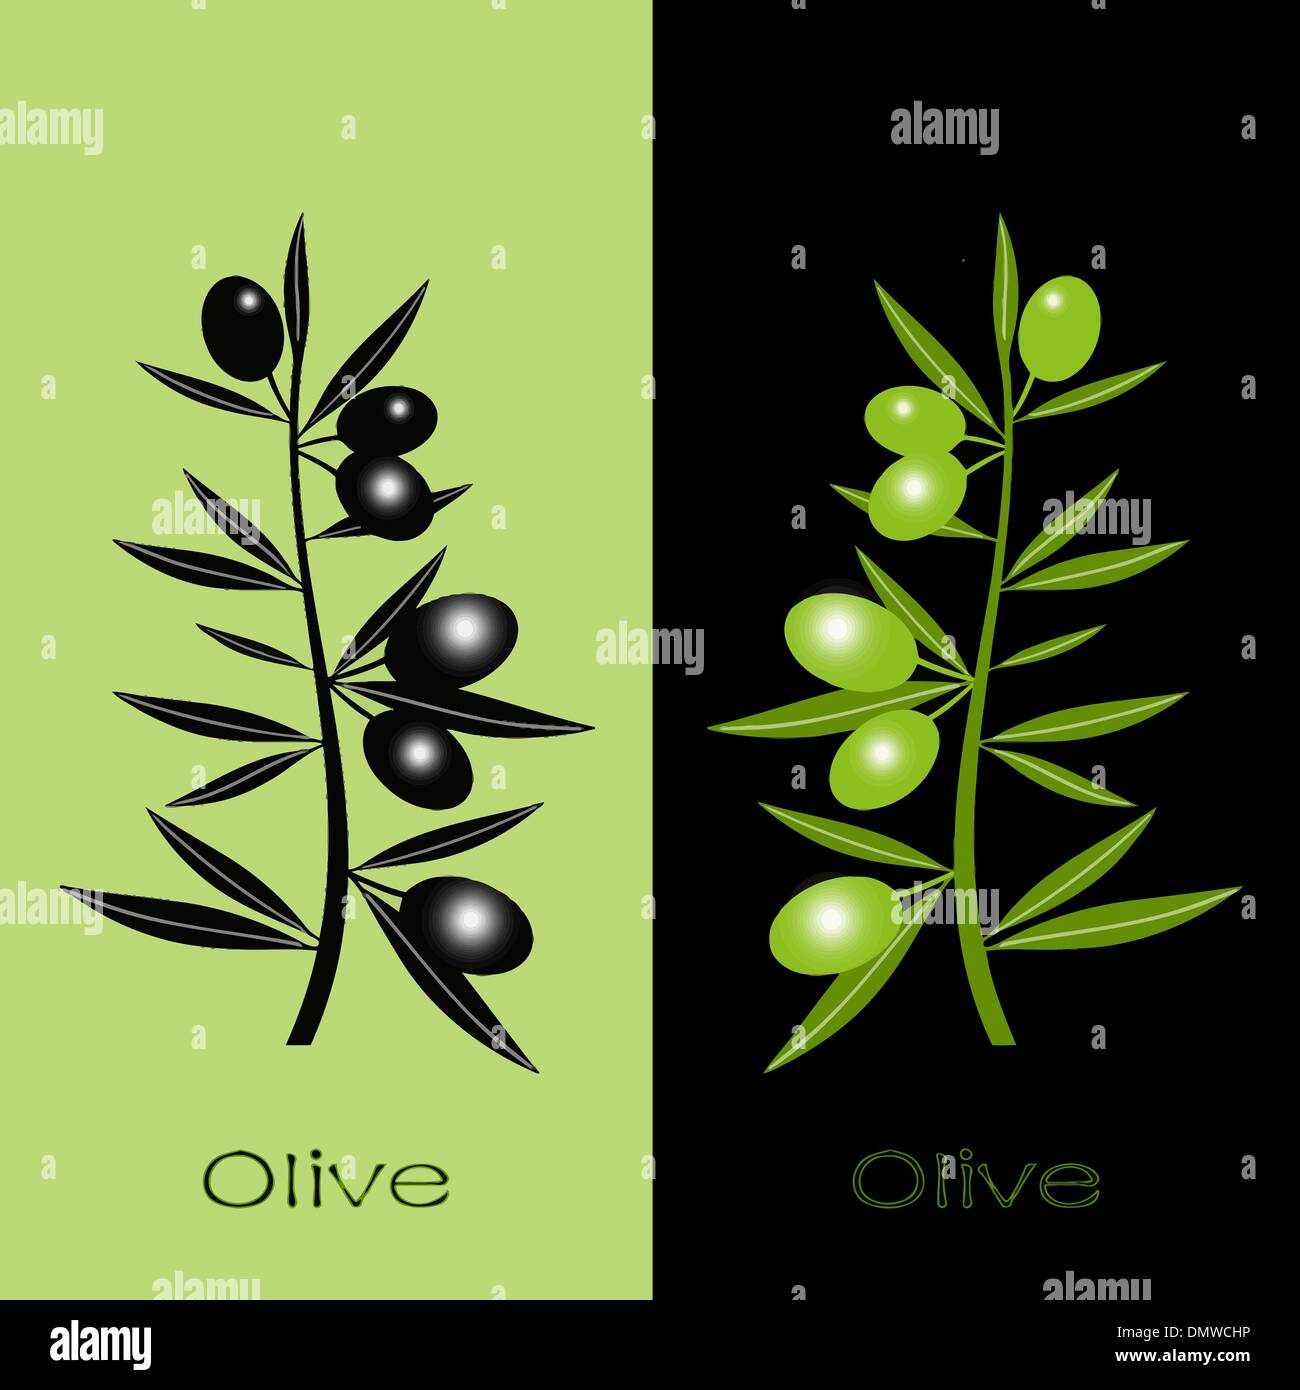 Black Olives Stock Vector Images - Alamy